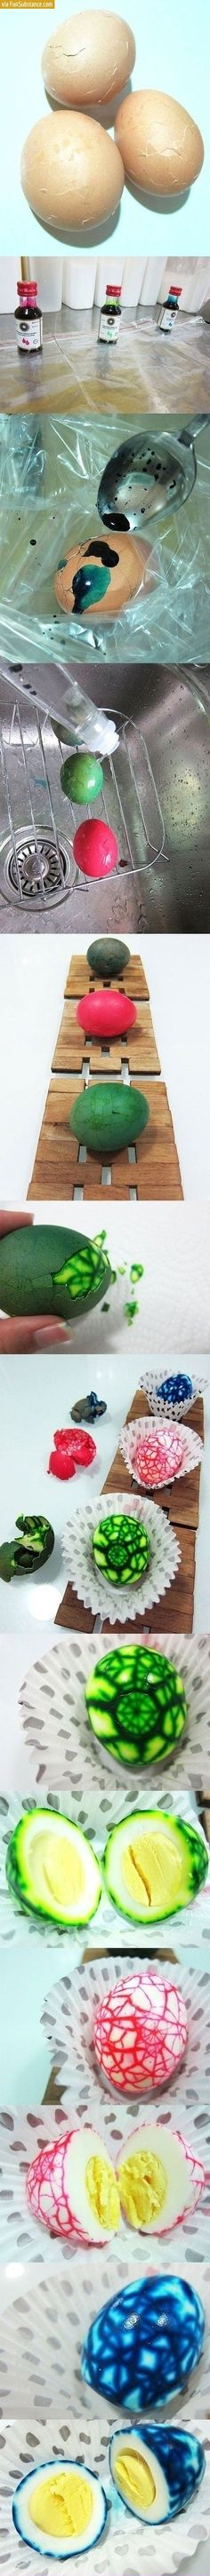 So cool! Crafty yet you can eat it!